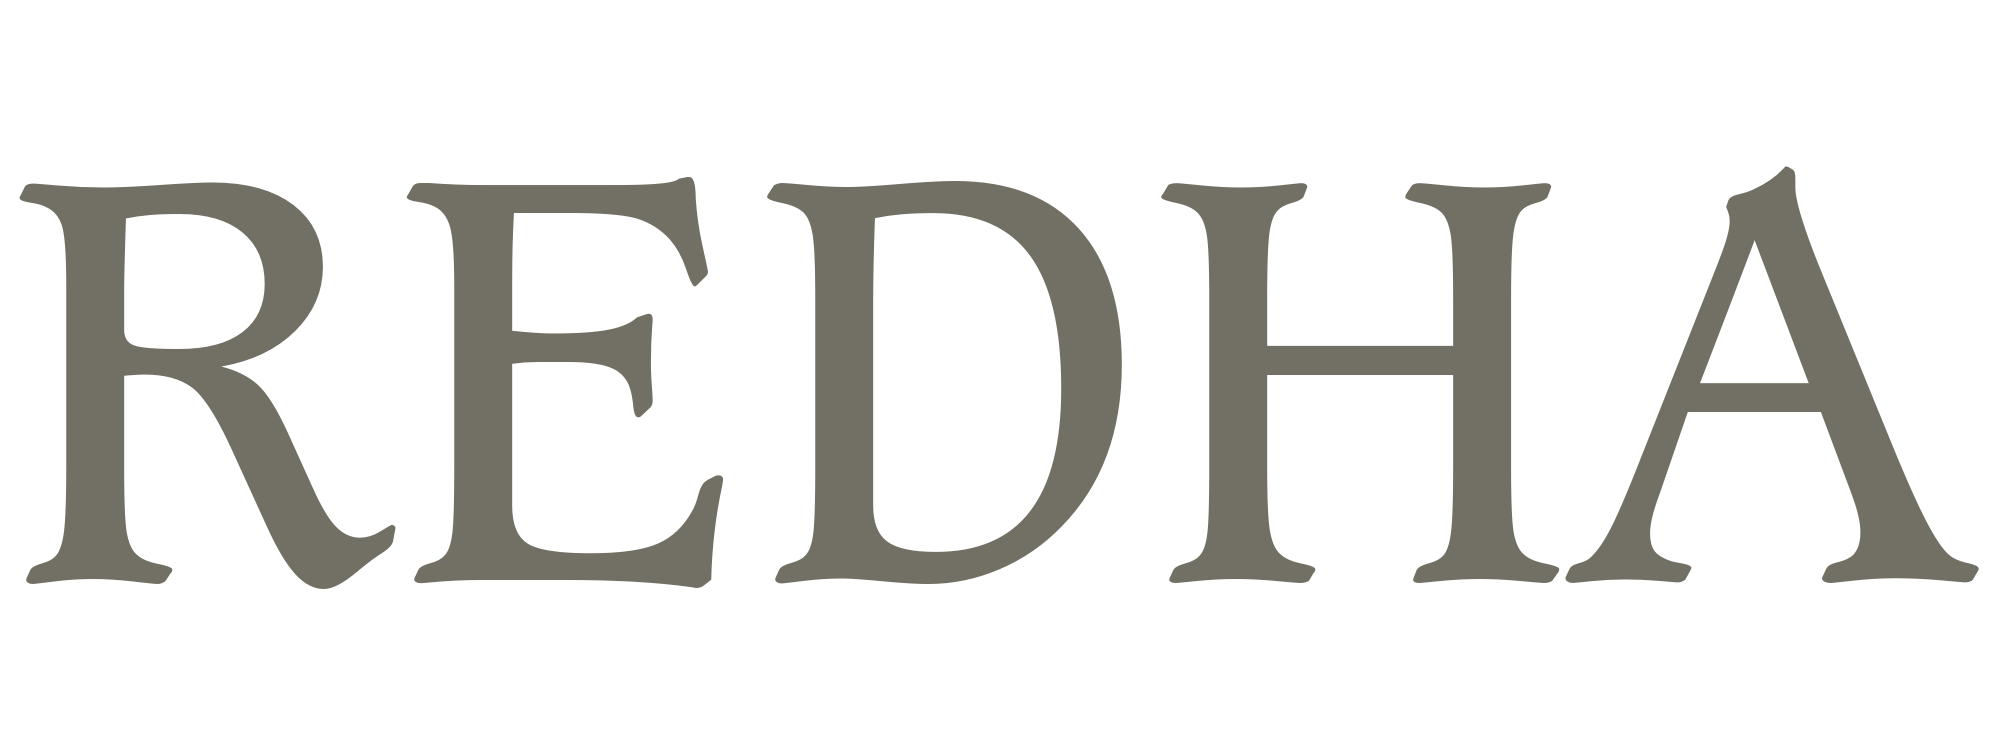 Redha - Name's Meaning of Redha